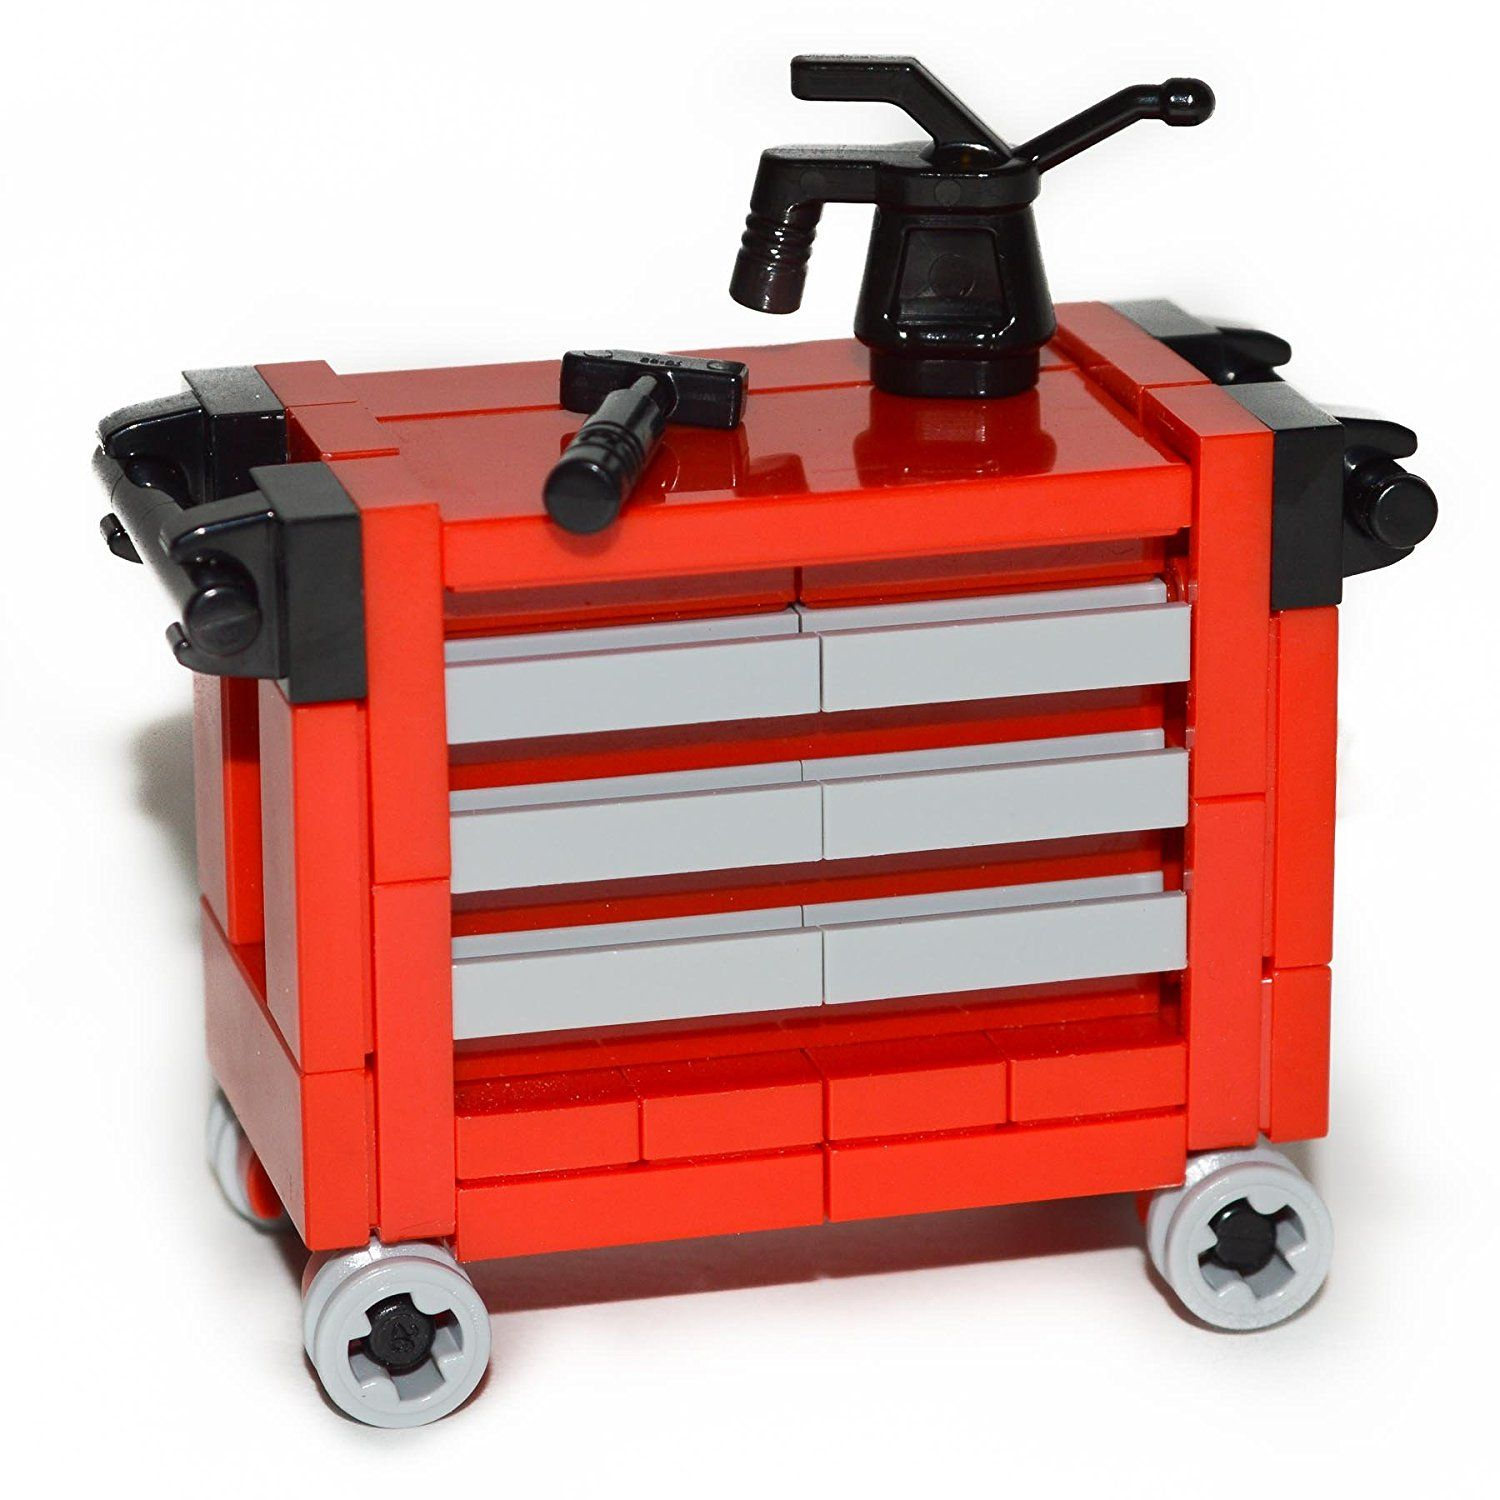 LEGO Custom Garage Set Collection with